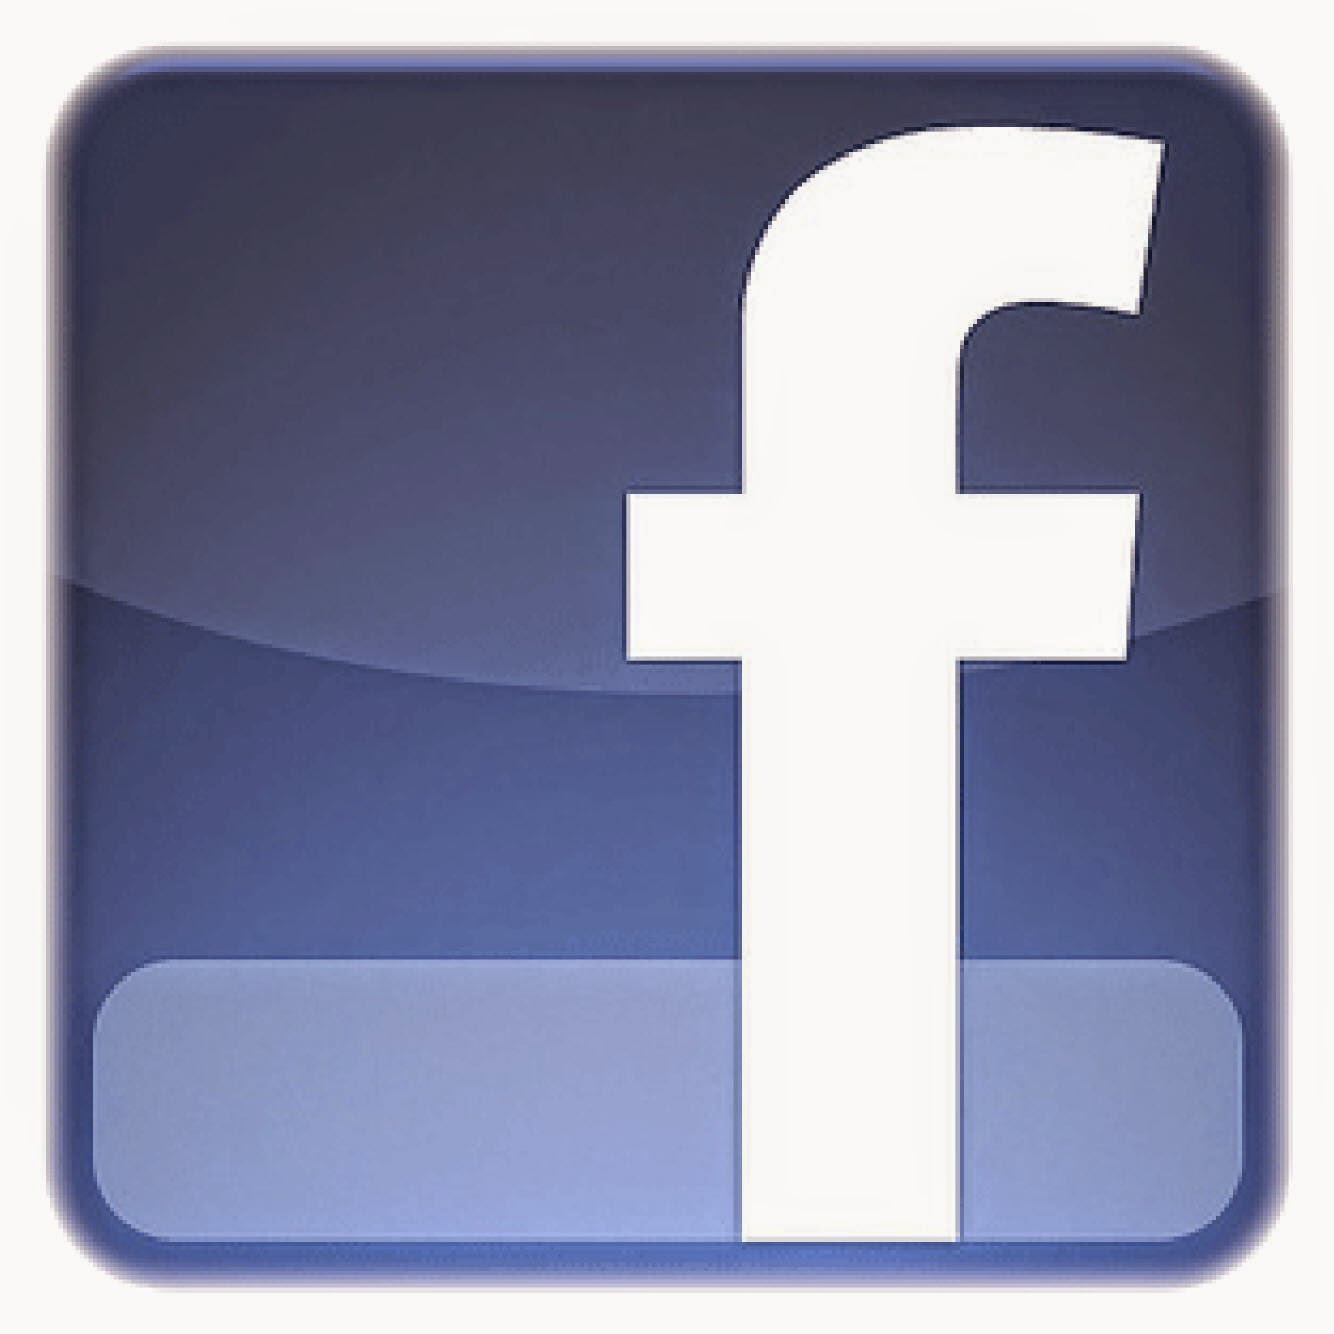 logo of facebook india